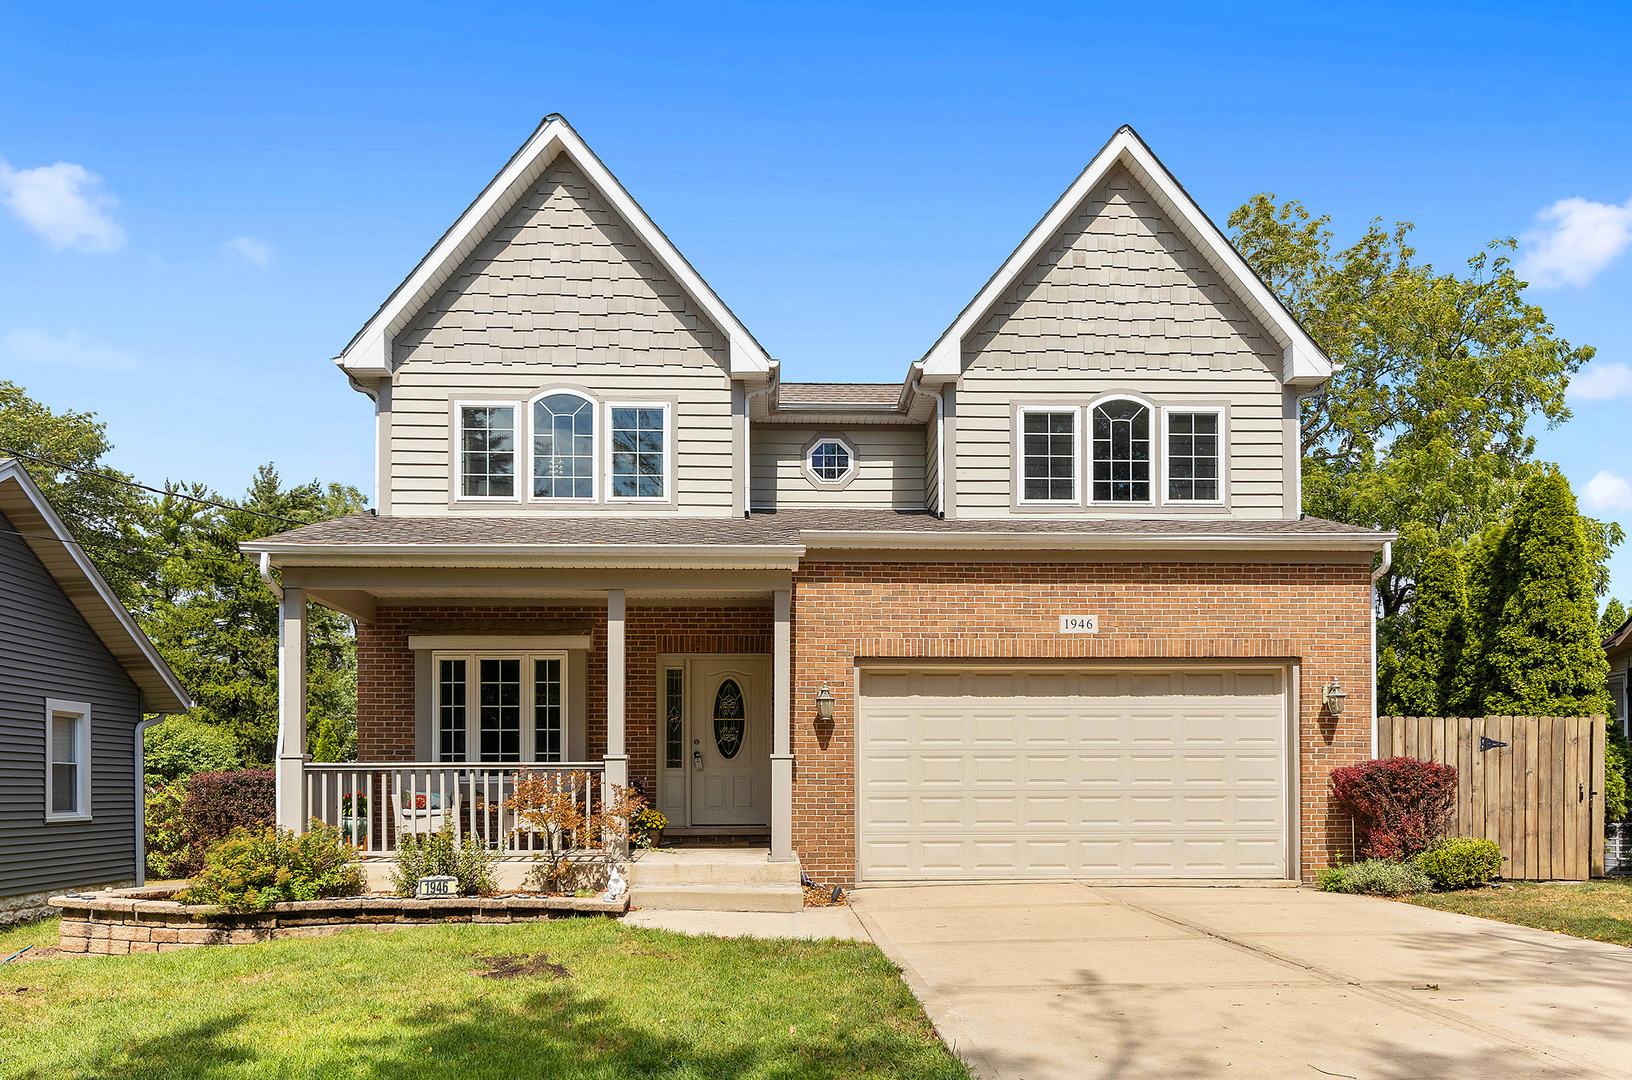 Photo for 1946 Hitchcock Avenue, Downers Grove, IL 60515 (MLS # 10847705)